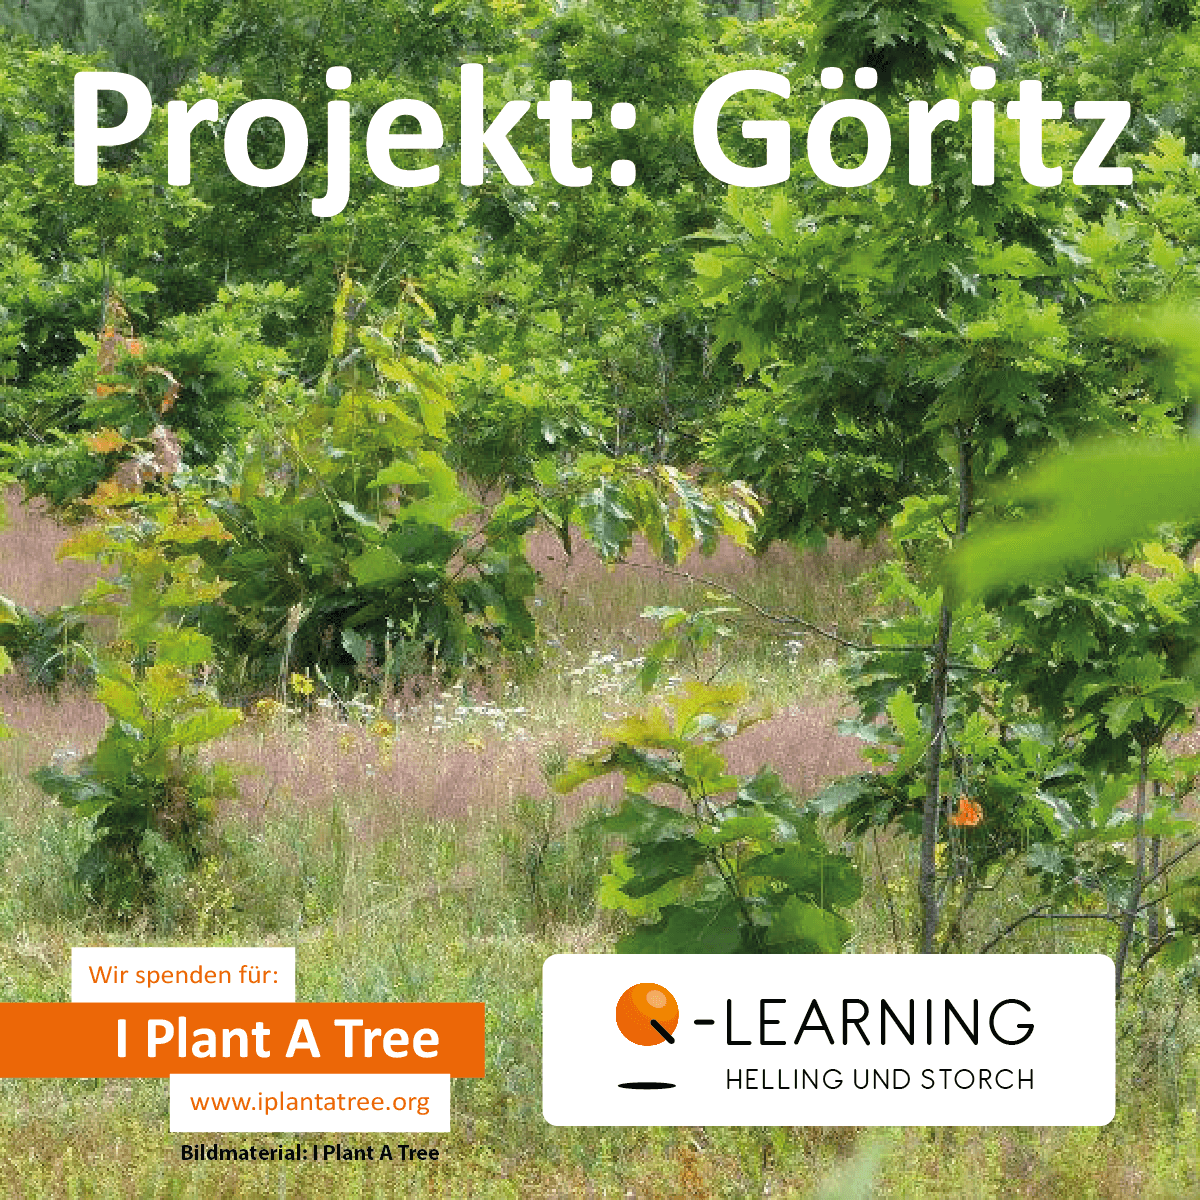 Q-LEARNING | I Plant A Tree Projekt Göritz 2012